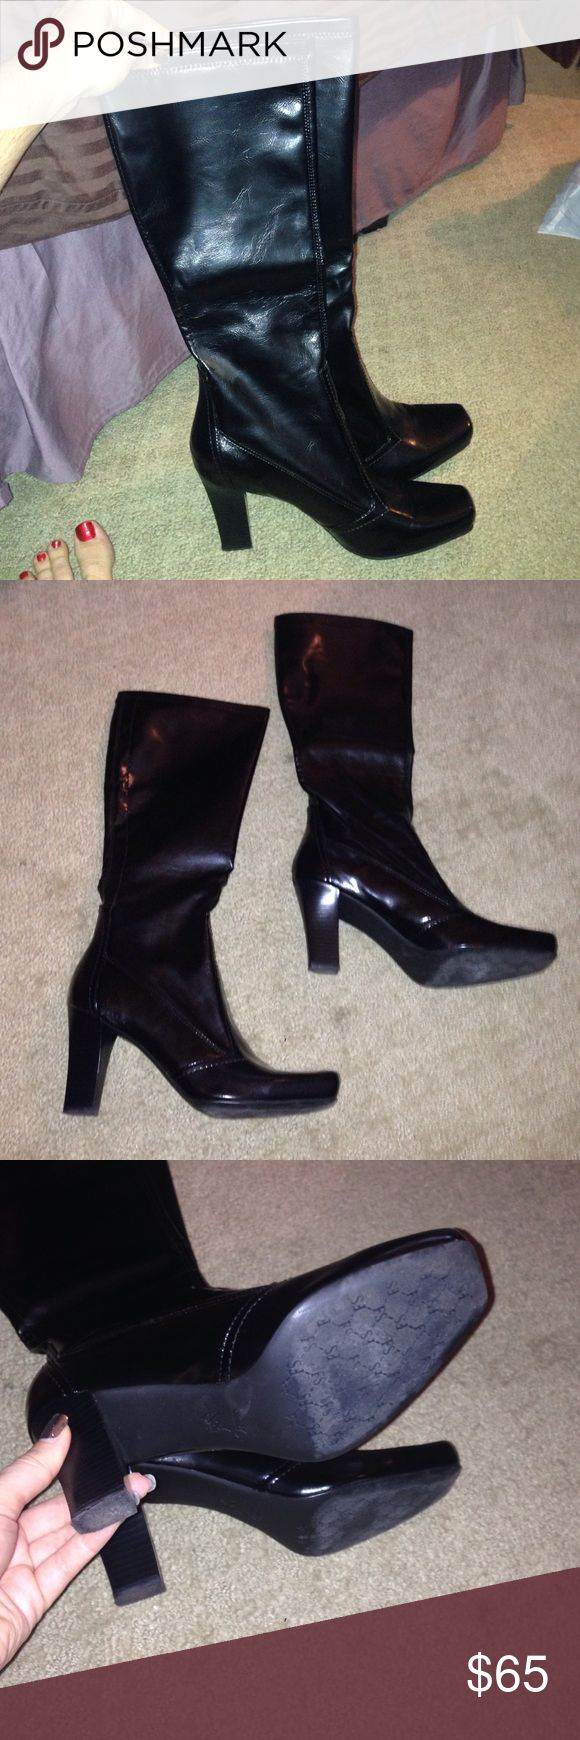 Barely Used Franco Sarto Boots In excellent condition! Franco Sarto Shoes Heeled Boots